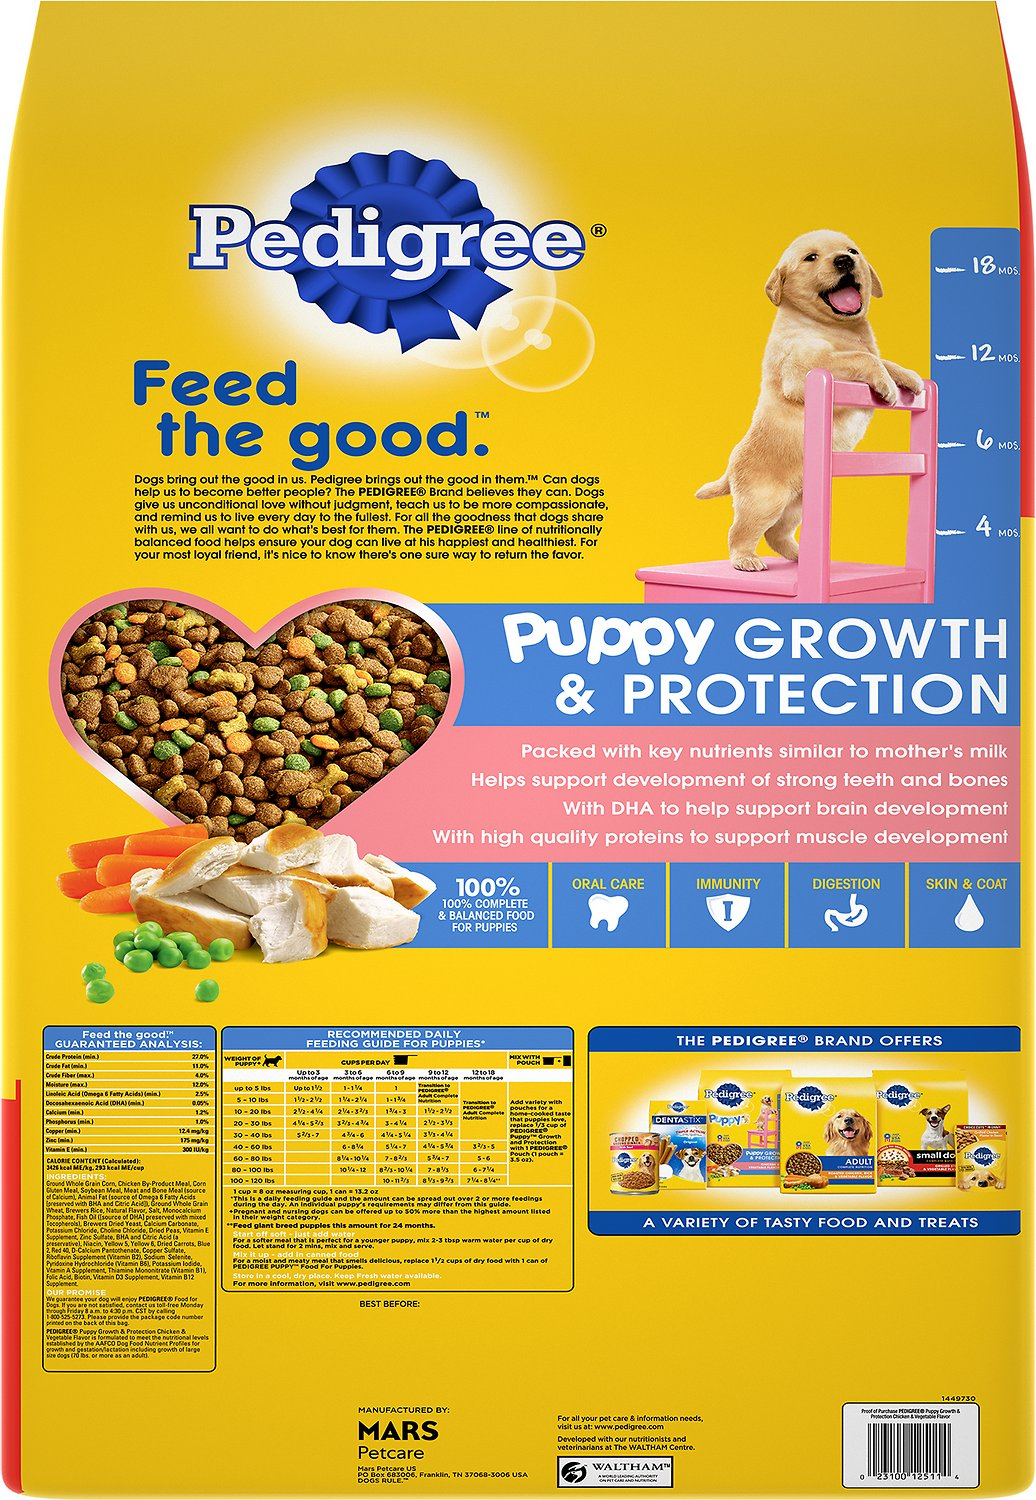 Pedigree Puppy Growth & Protection